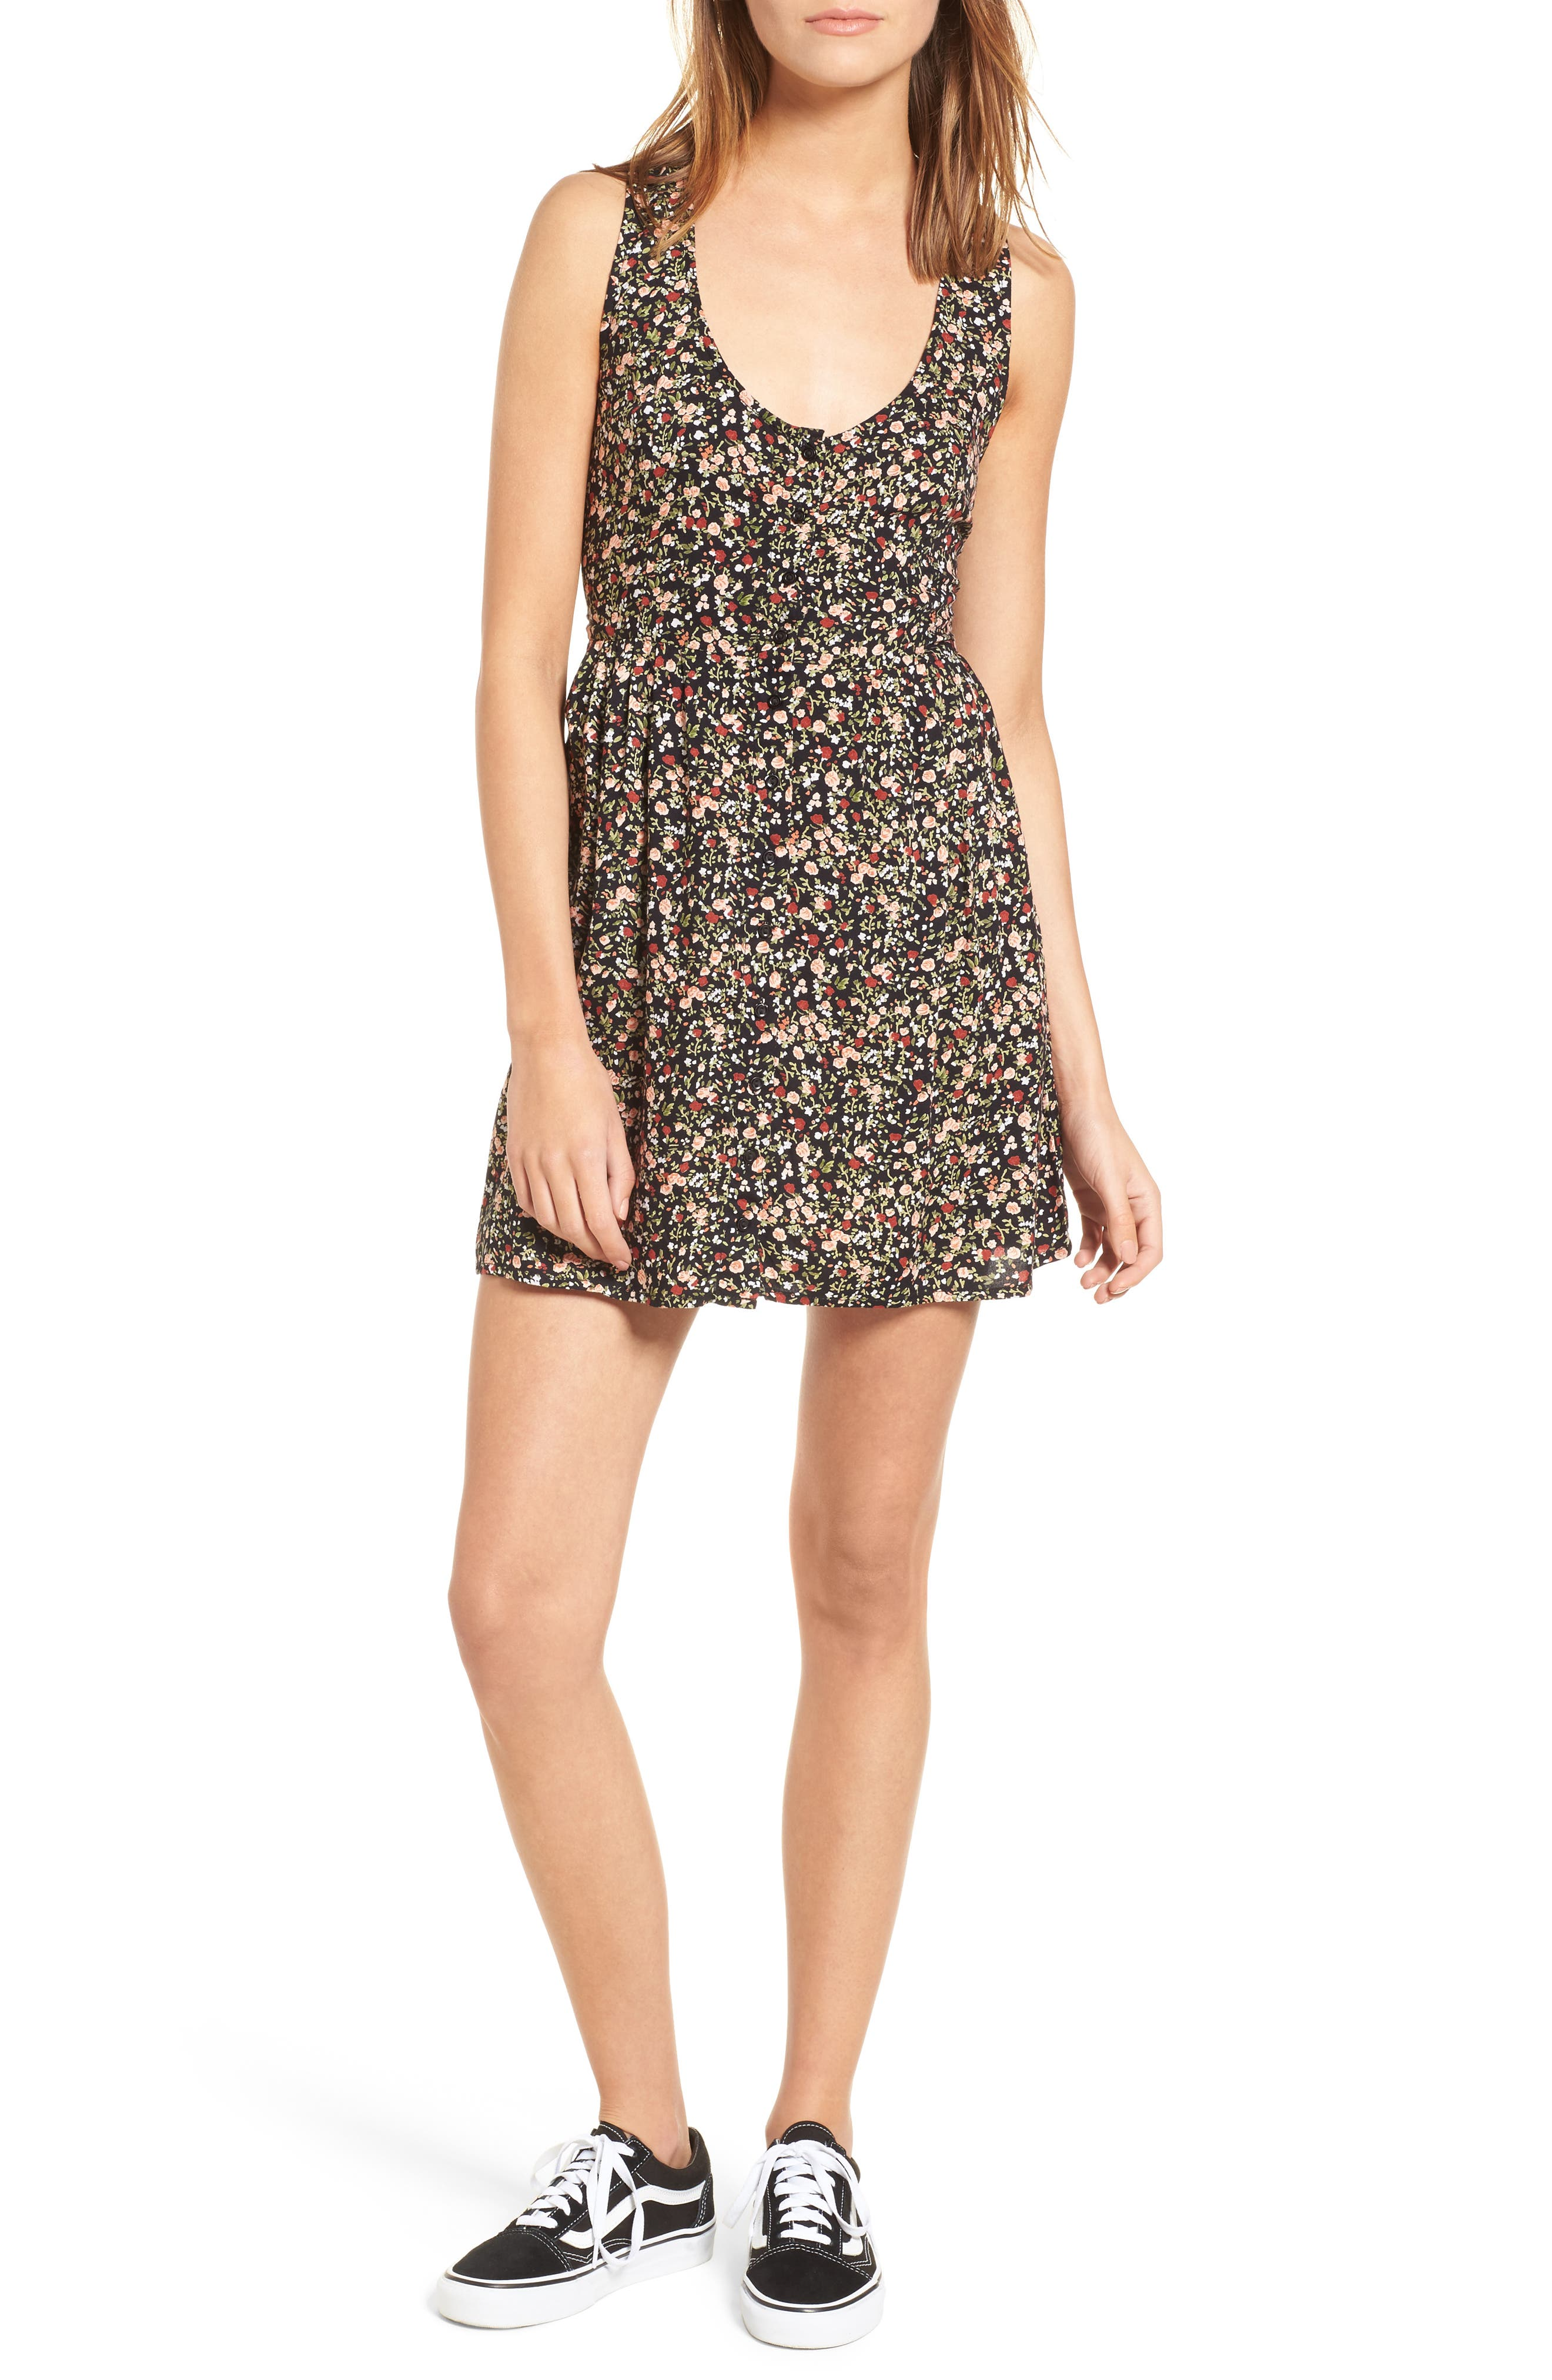 Chase Knot Back Dress,                         Main,                         color, Black Multi